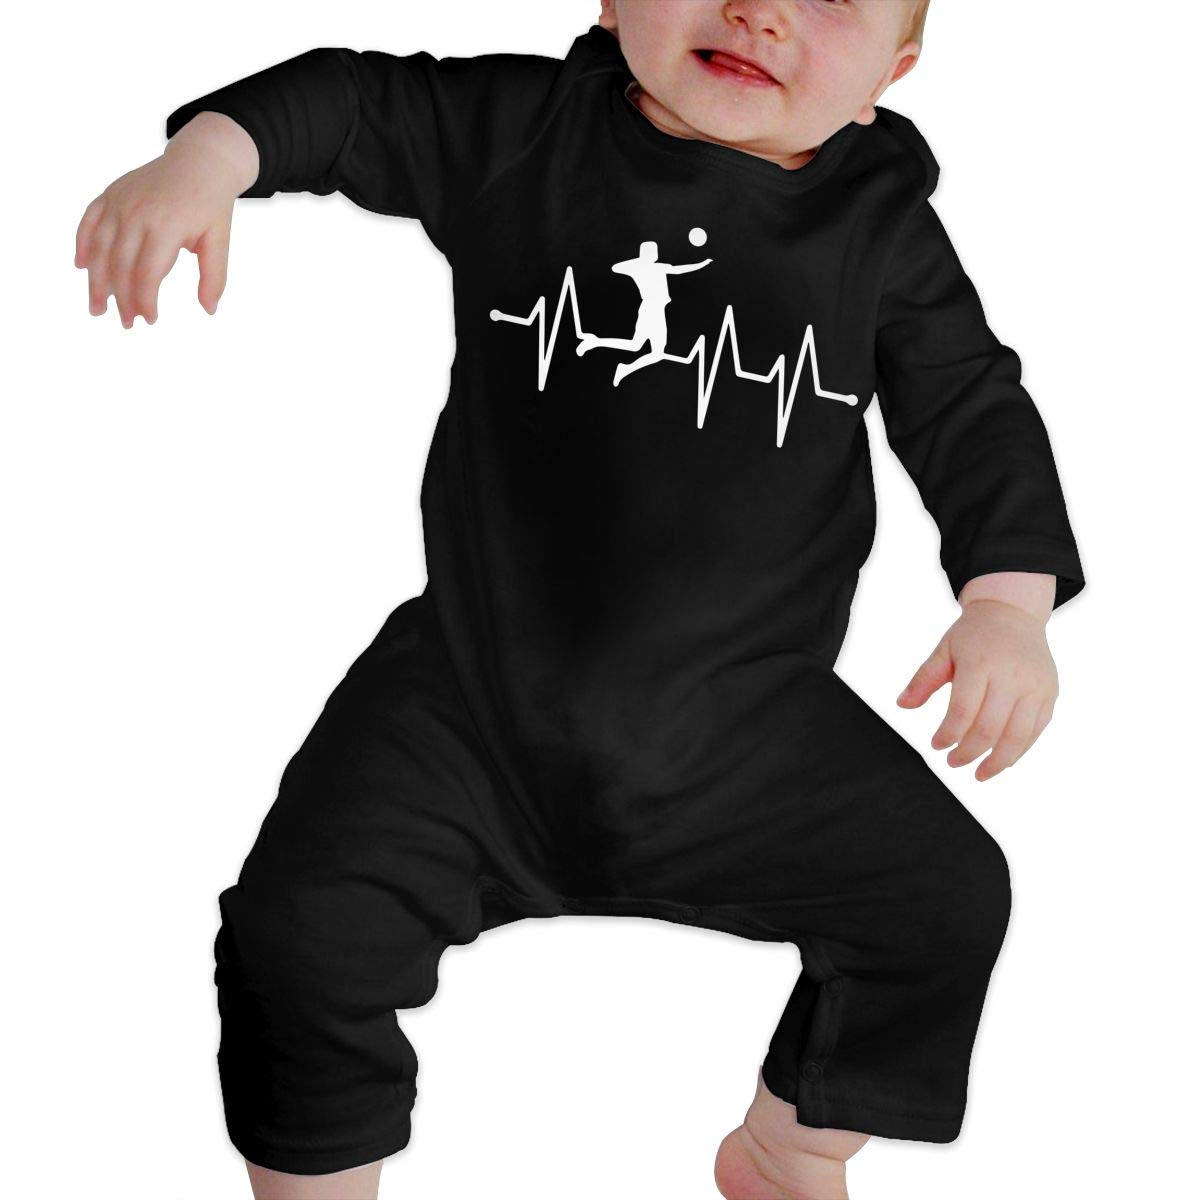 LBJQ8 Volleyball Heartbeat2 Unisex Baby Organic Cotton Jumpsuits Playsuit Outfits